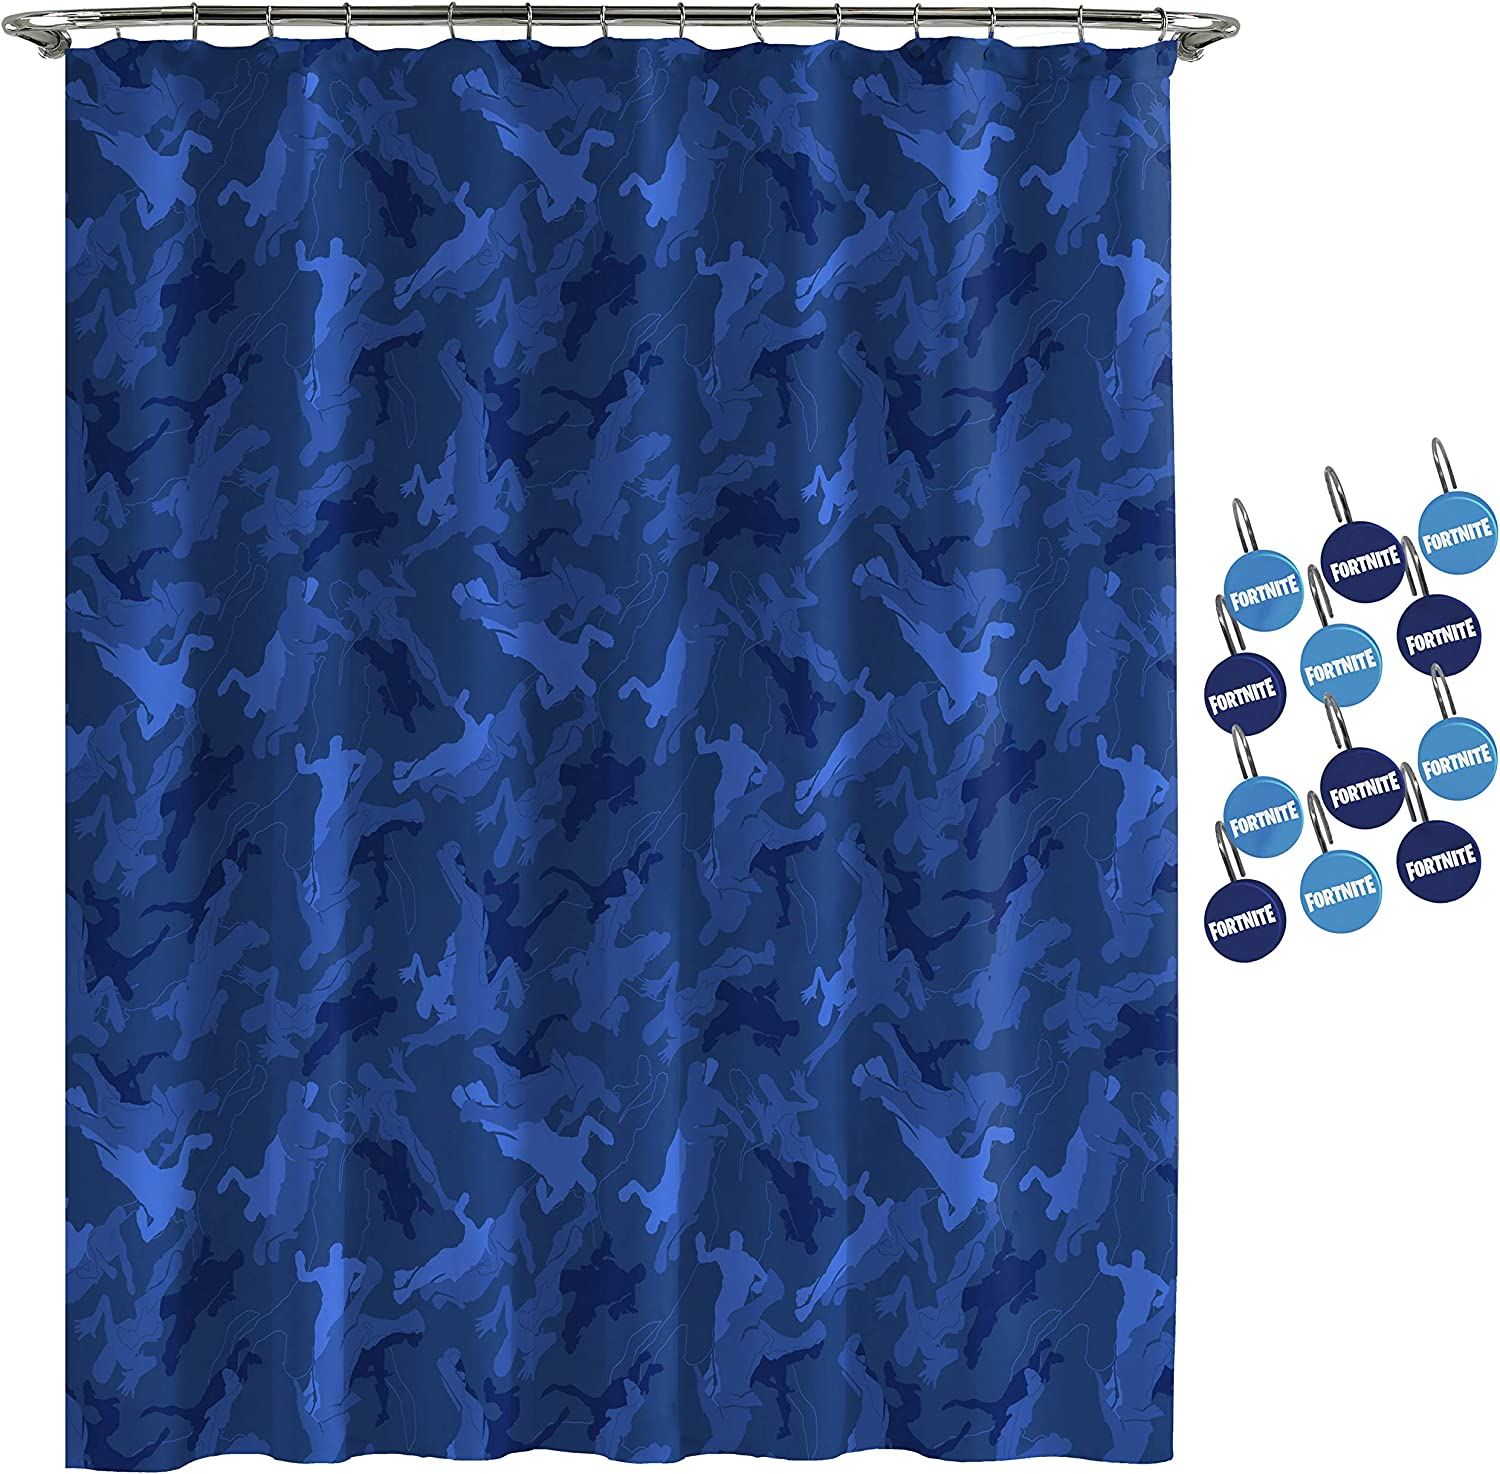 Jay Complete High quality new Free Shipping Franco Fortnite Emote Camo 12-Piece Hook Se Curtain Shower